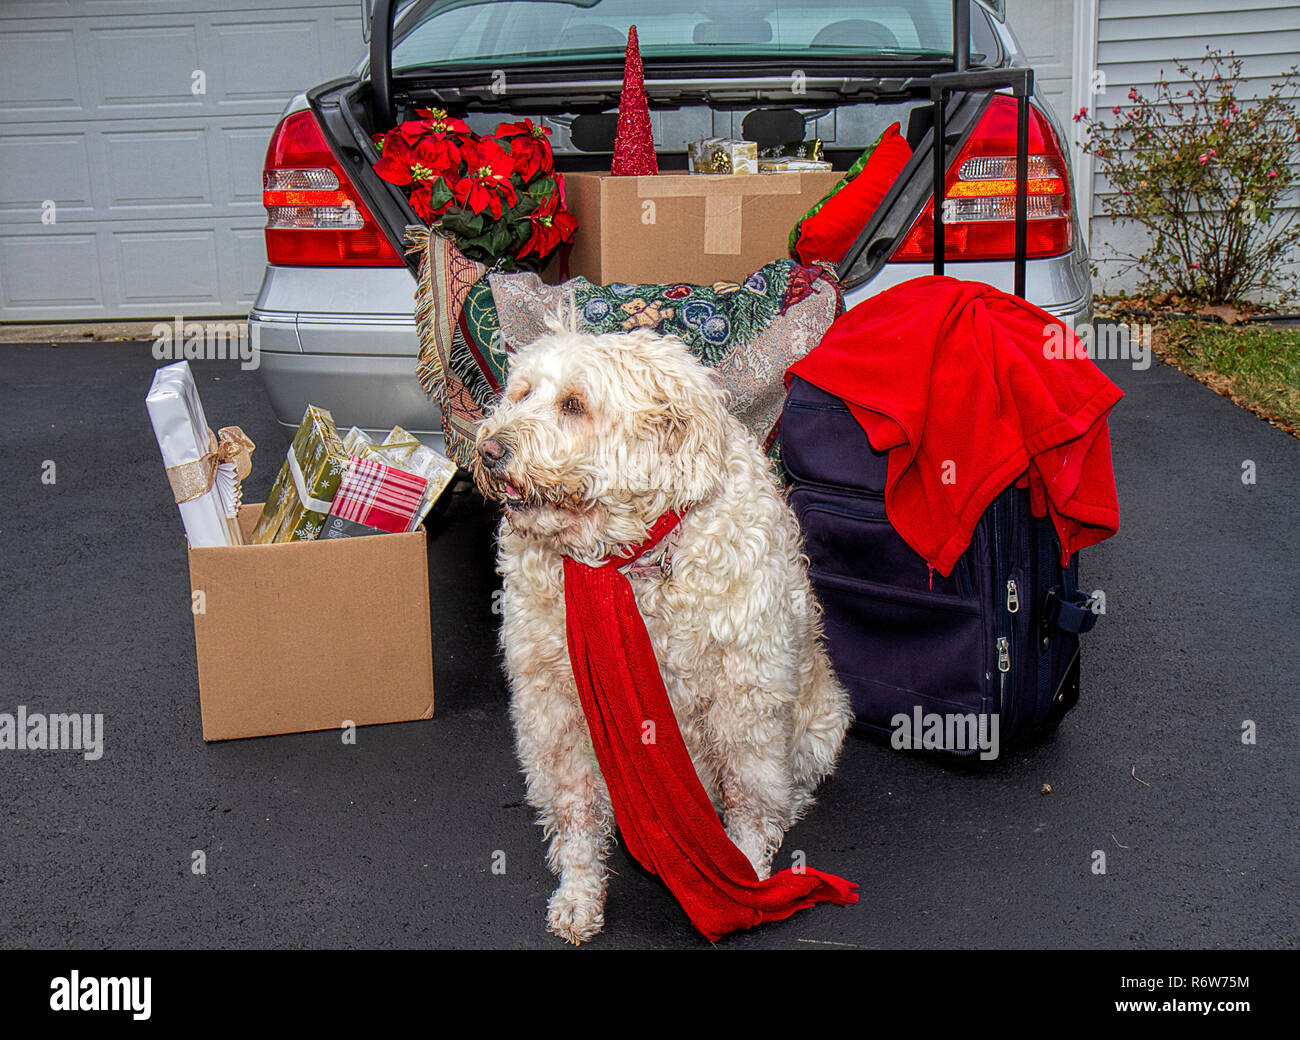 Trunk of car packed for traveling over the Christmas Holidays.   Filled with luggage,gifts, poinsettias and more.  Large white dog waits patiently. - Stock Image